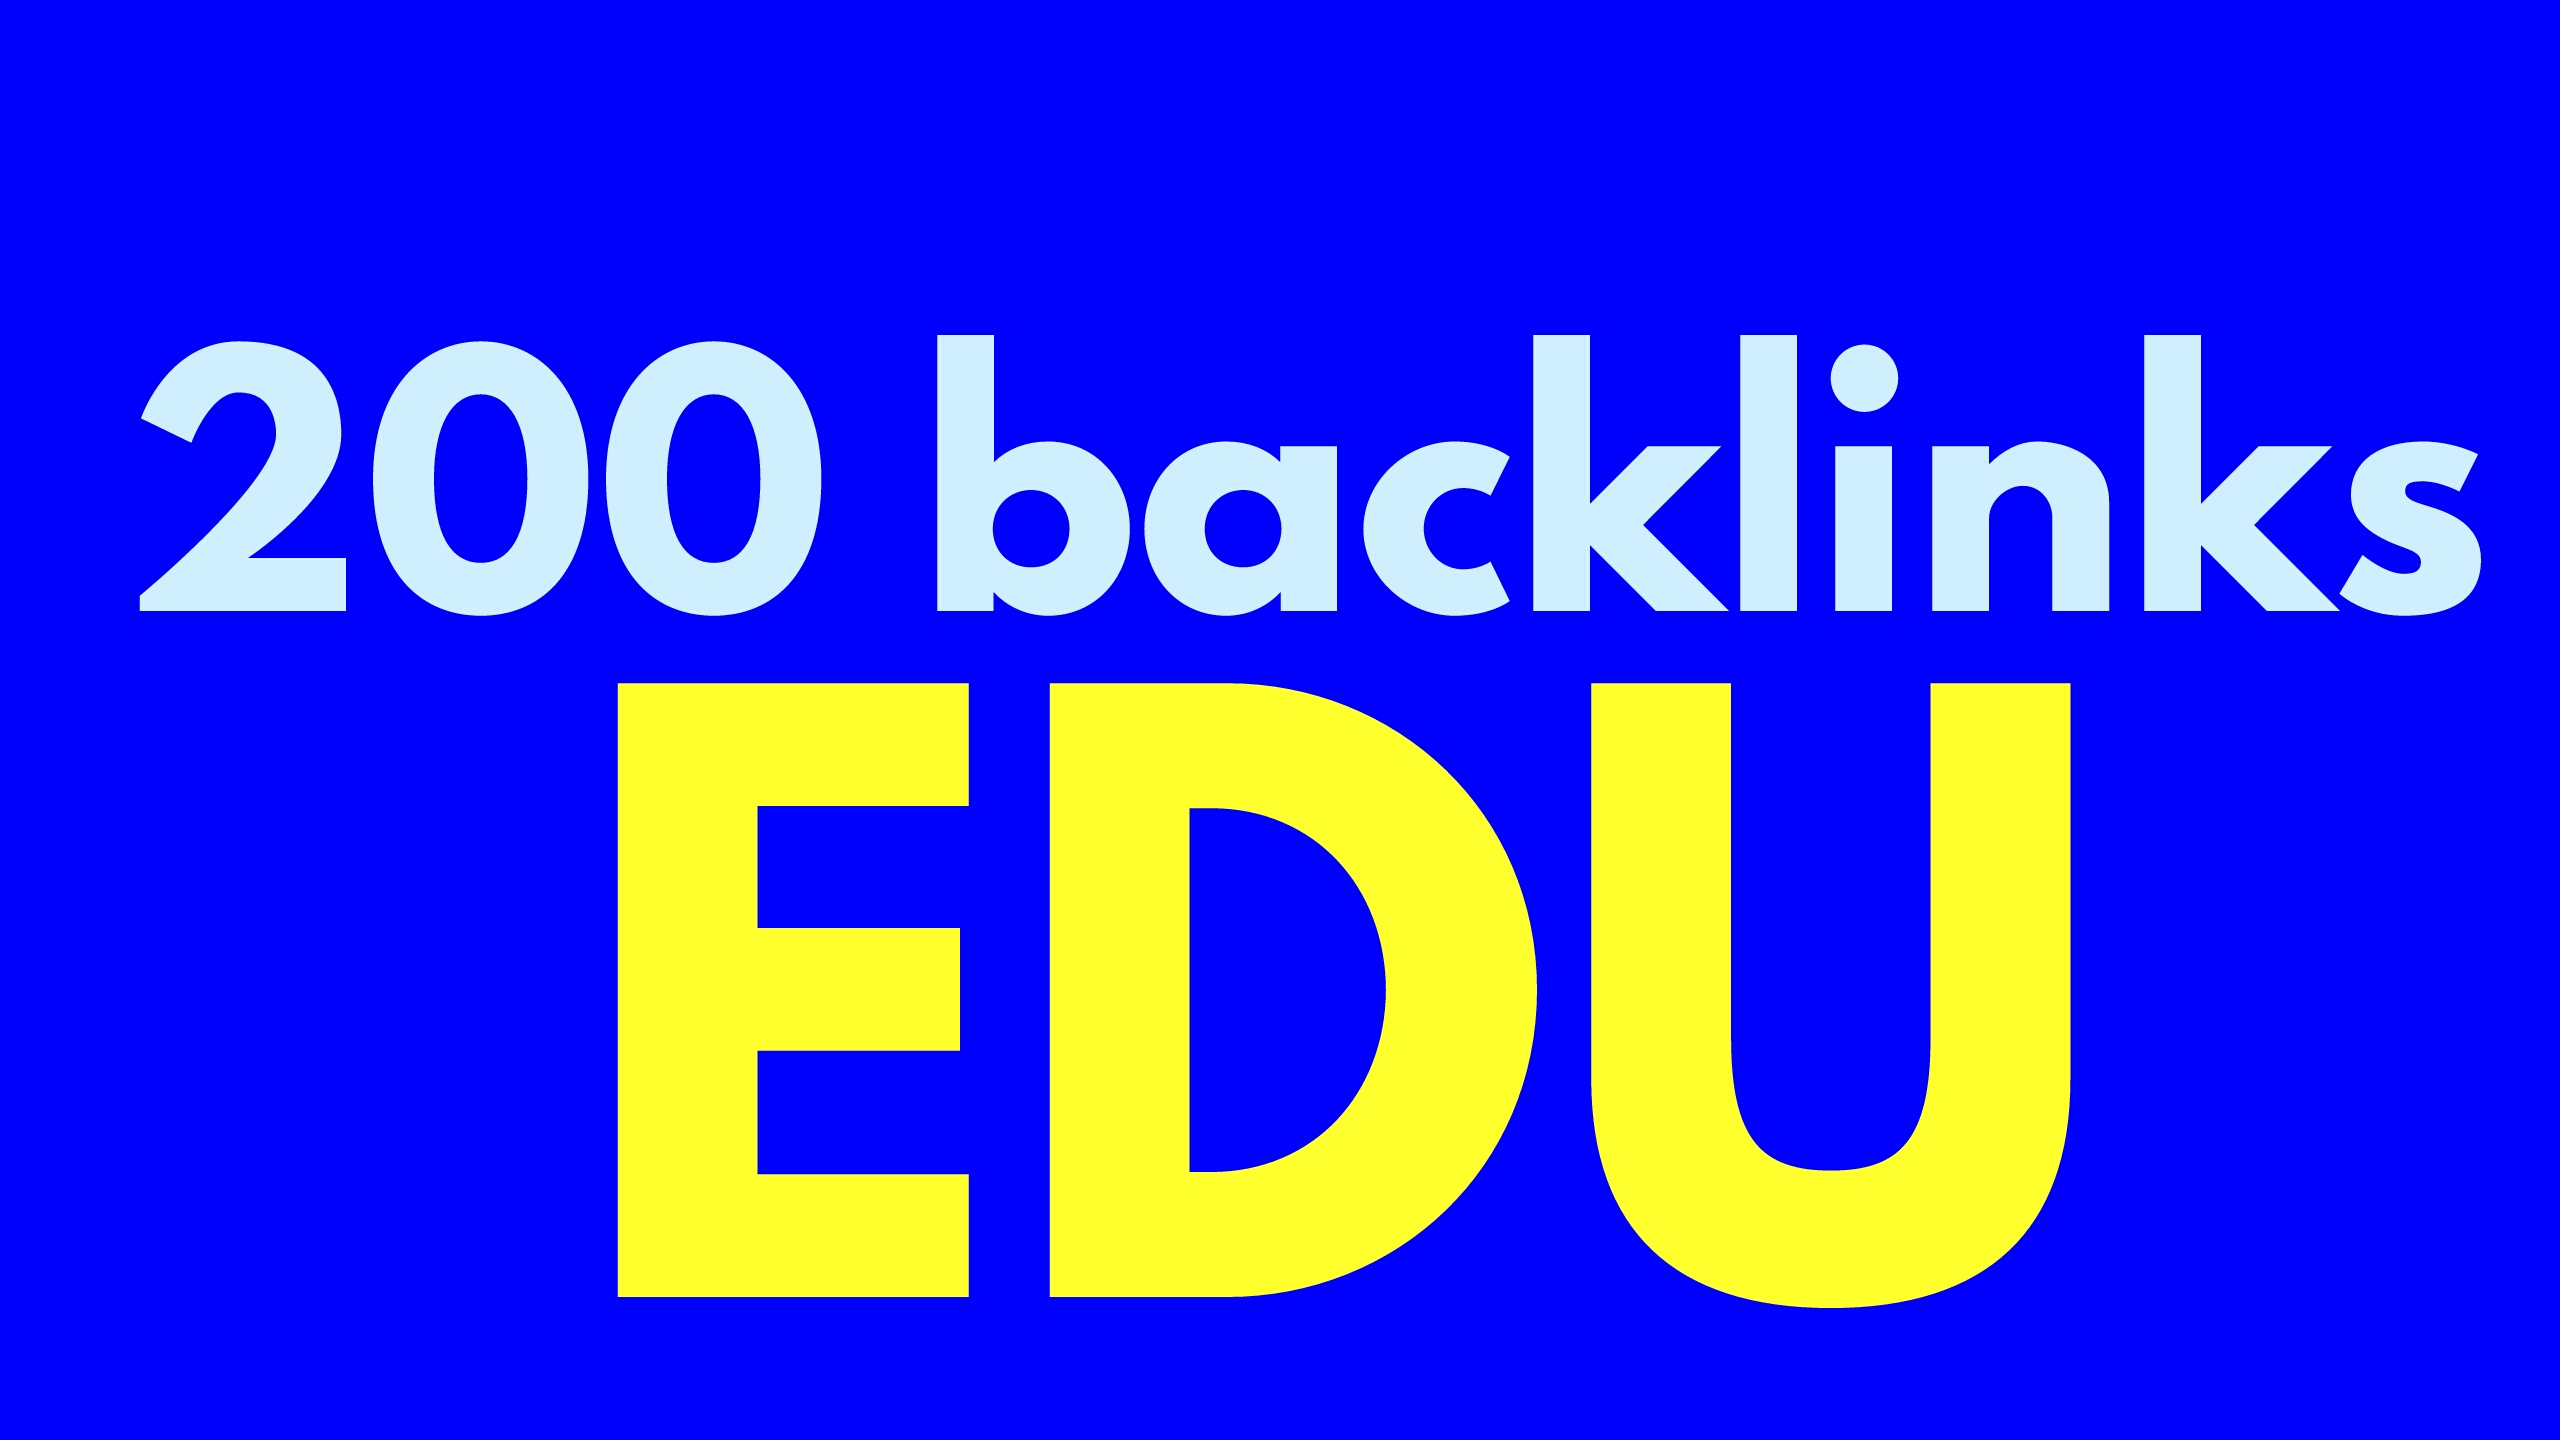 200 backlinks EDU for your site